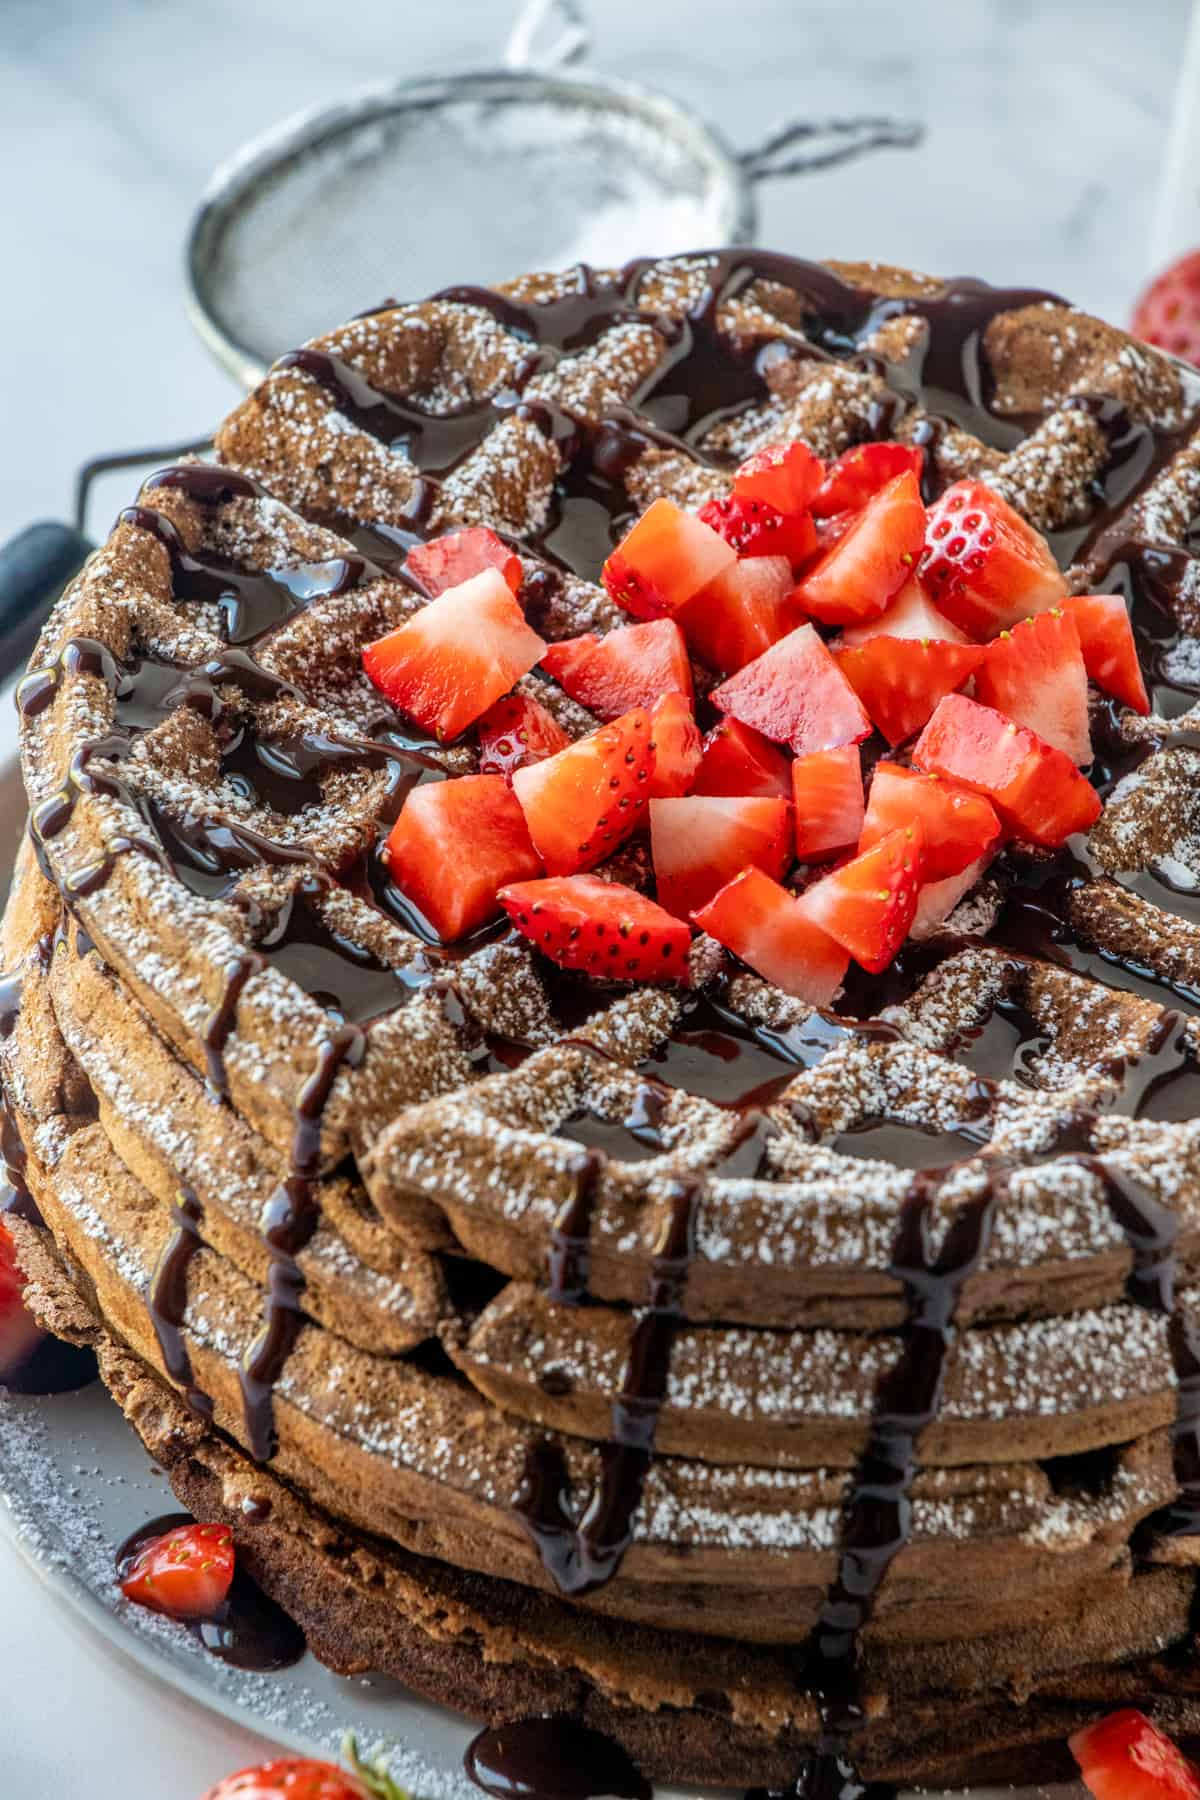 Close up photos of chocolate waffles showing chocolate syrup dripping down the side